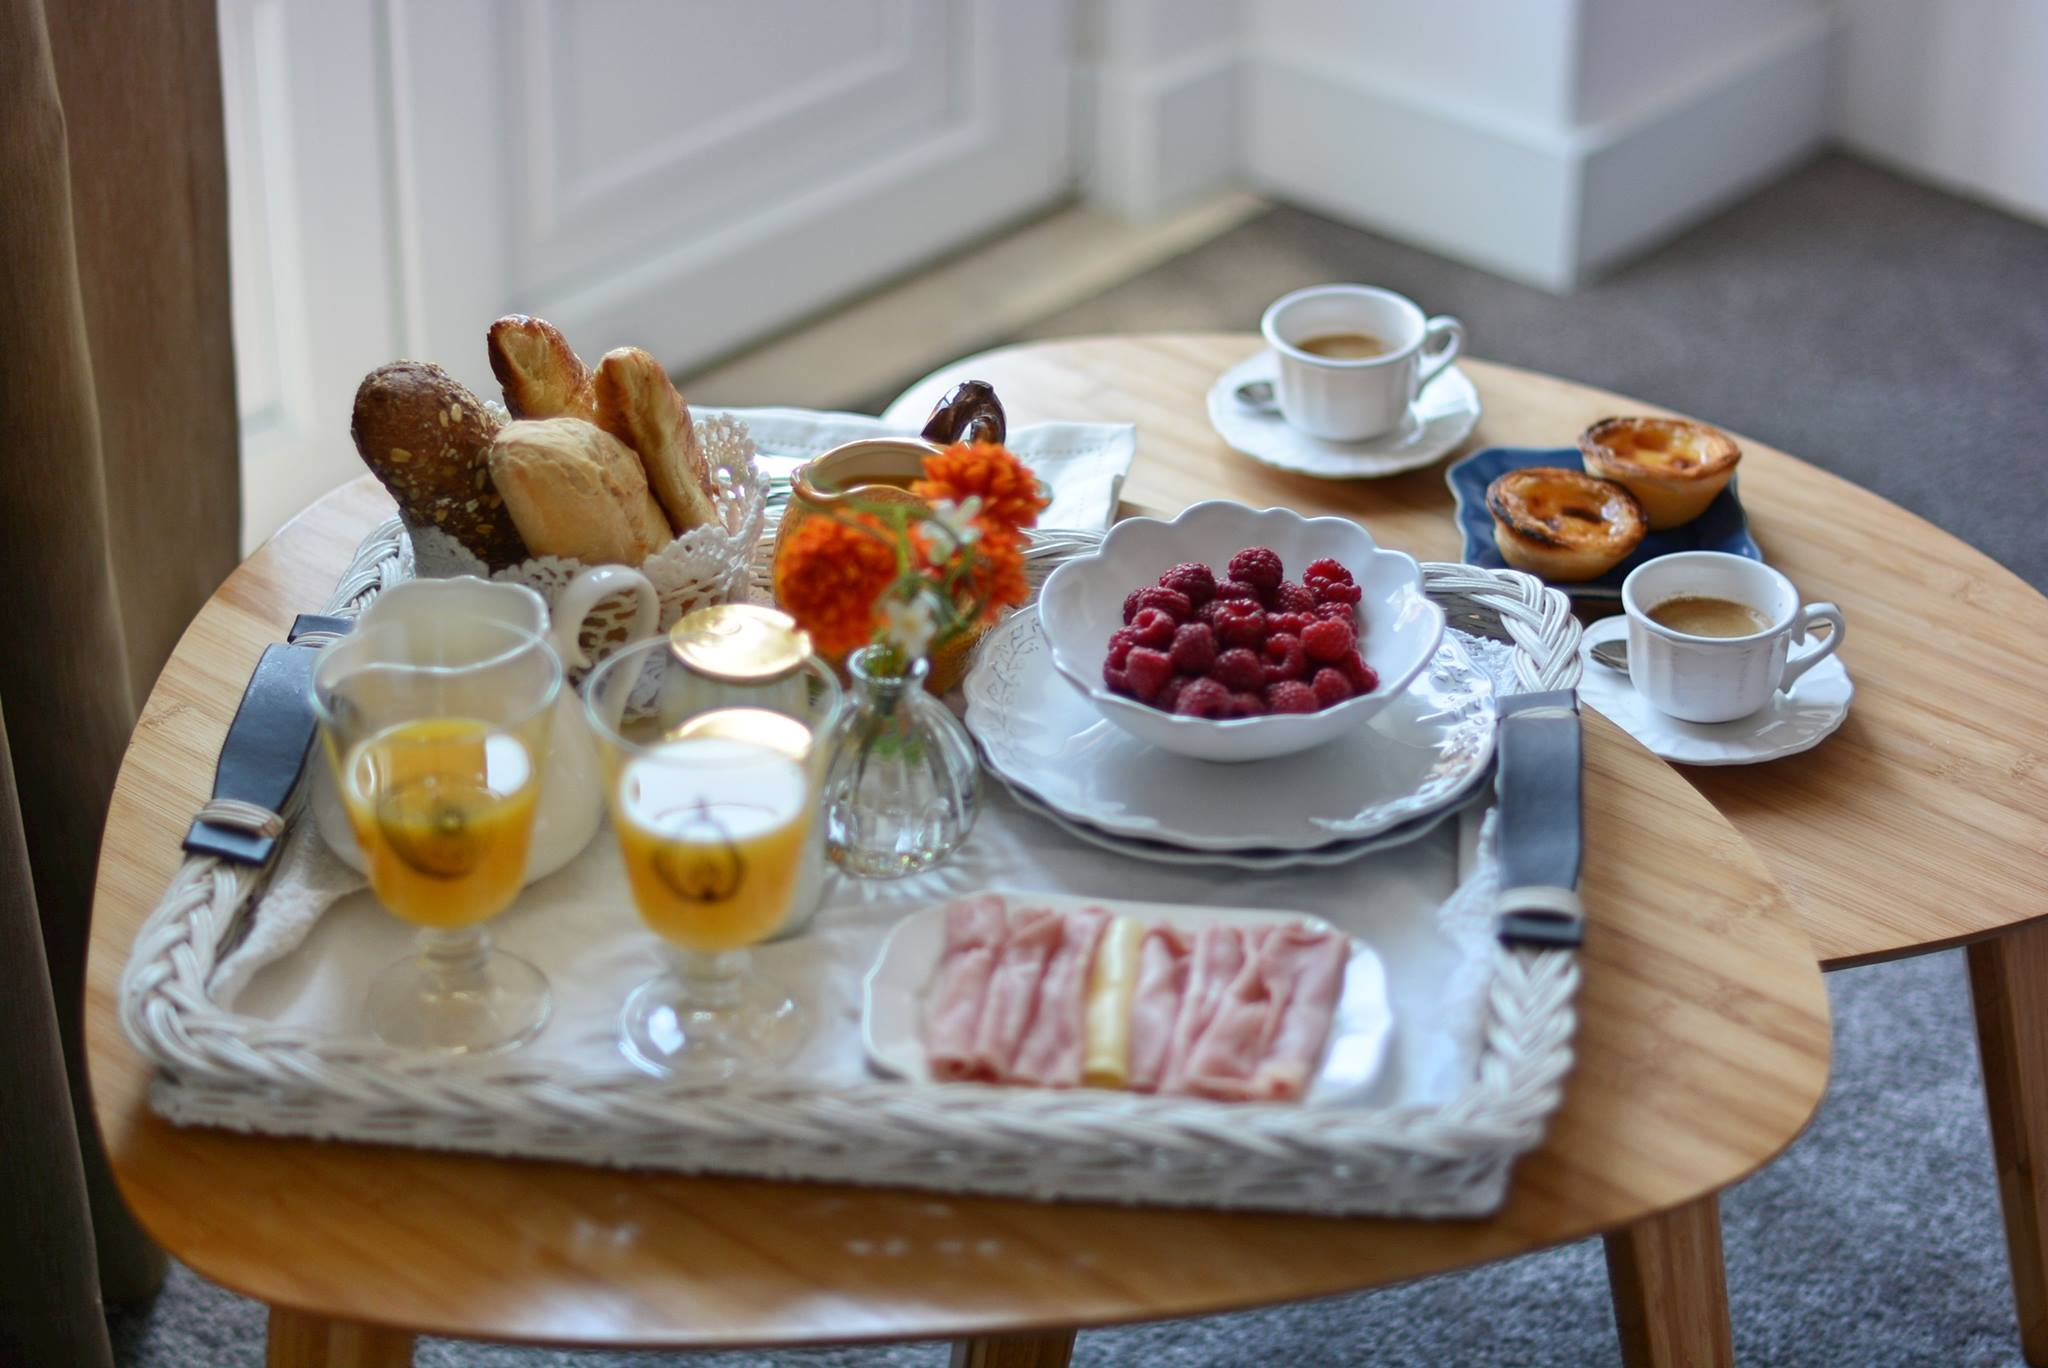 Augusta Boutique House is one of the best boutique hotels in Lisbon and offers in room breakfasts